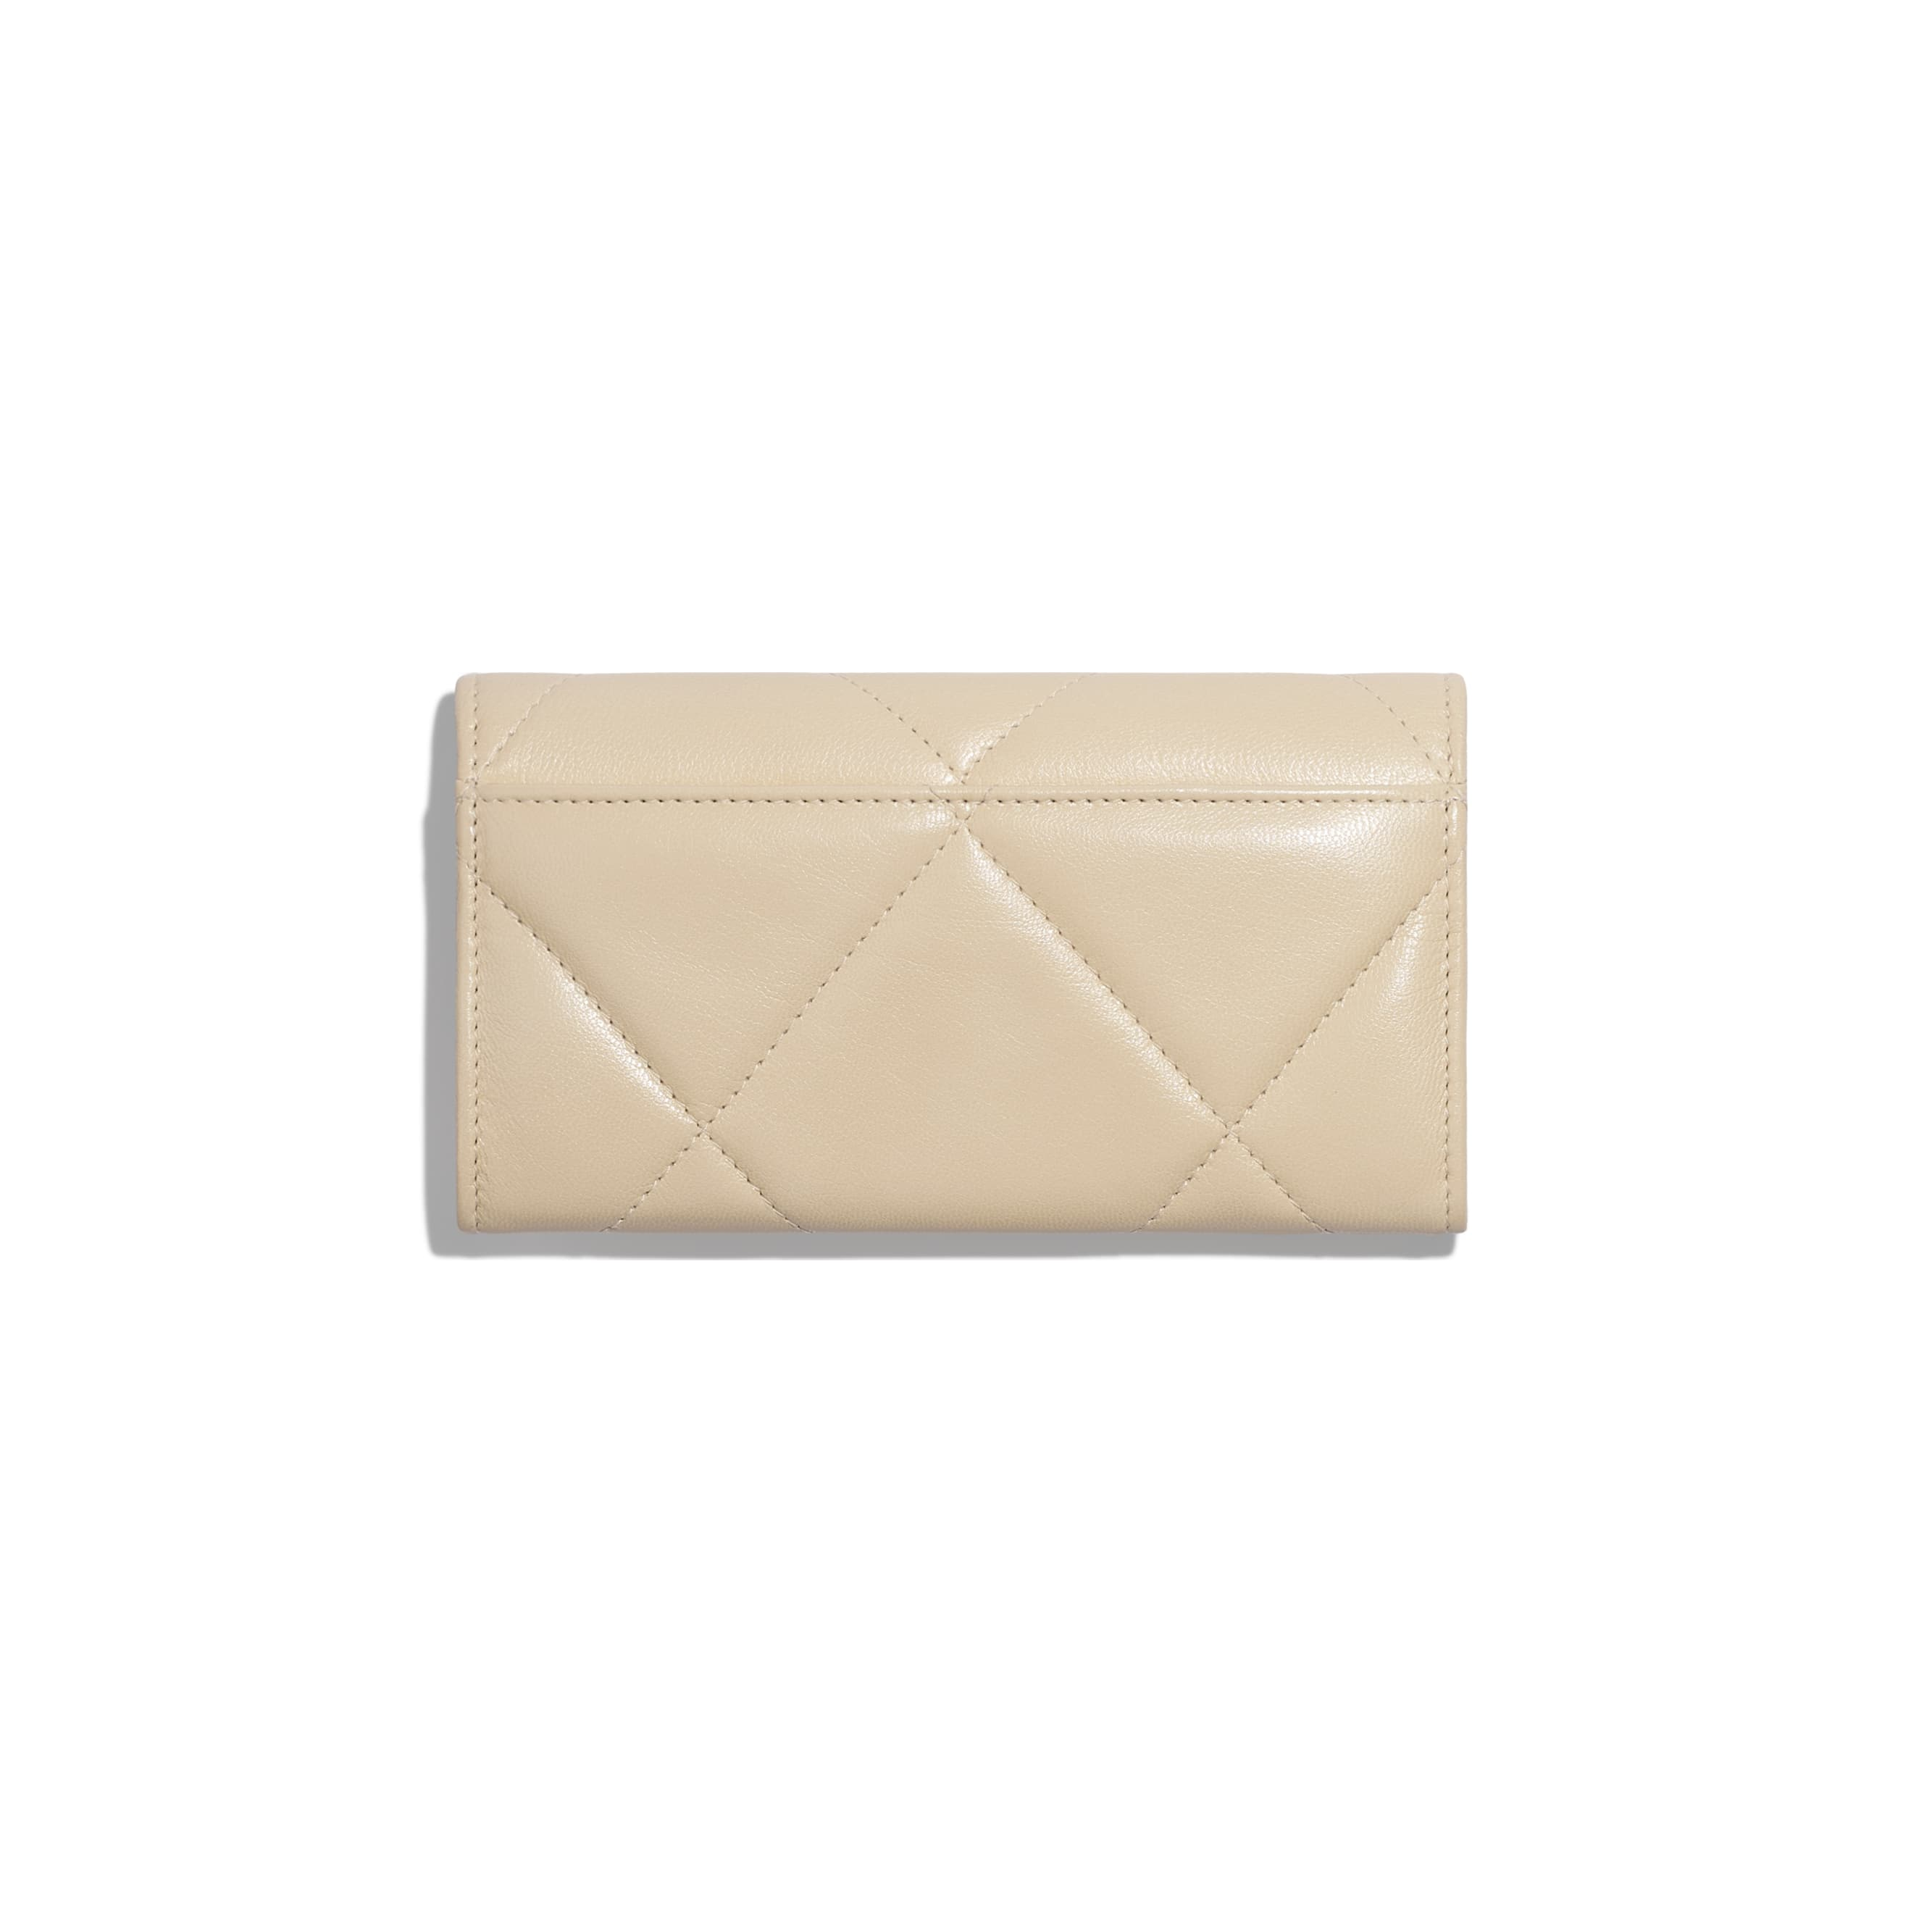 CHANEL 19 Flap Wallet - Beige - Goatskin, Gold-Tone, Silver-Tone & Ruthenium-Finish Metal - Alternative view - see standard sized version